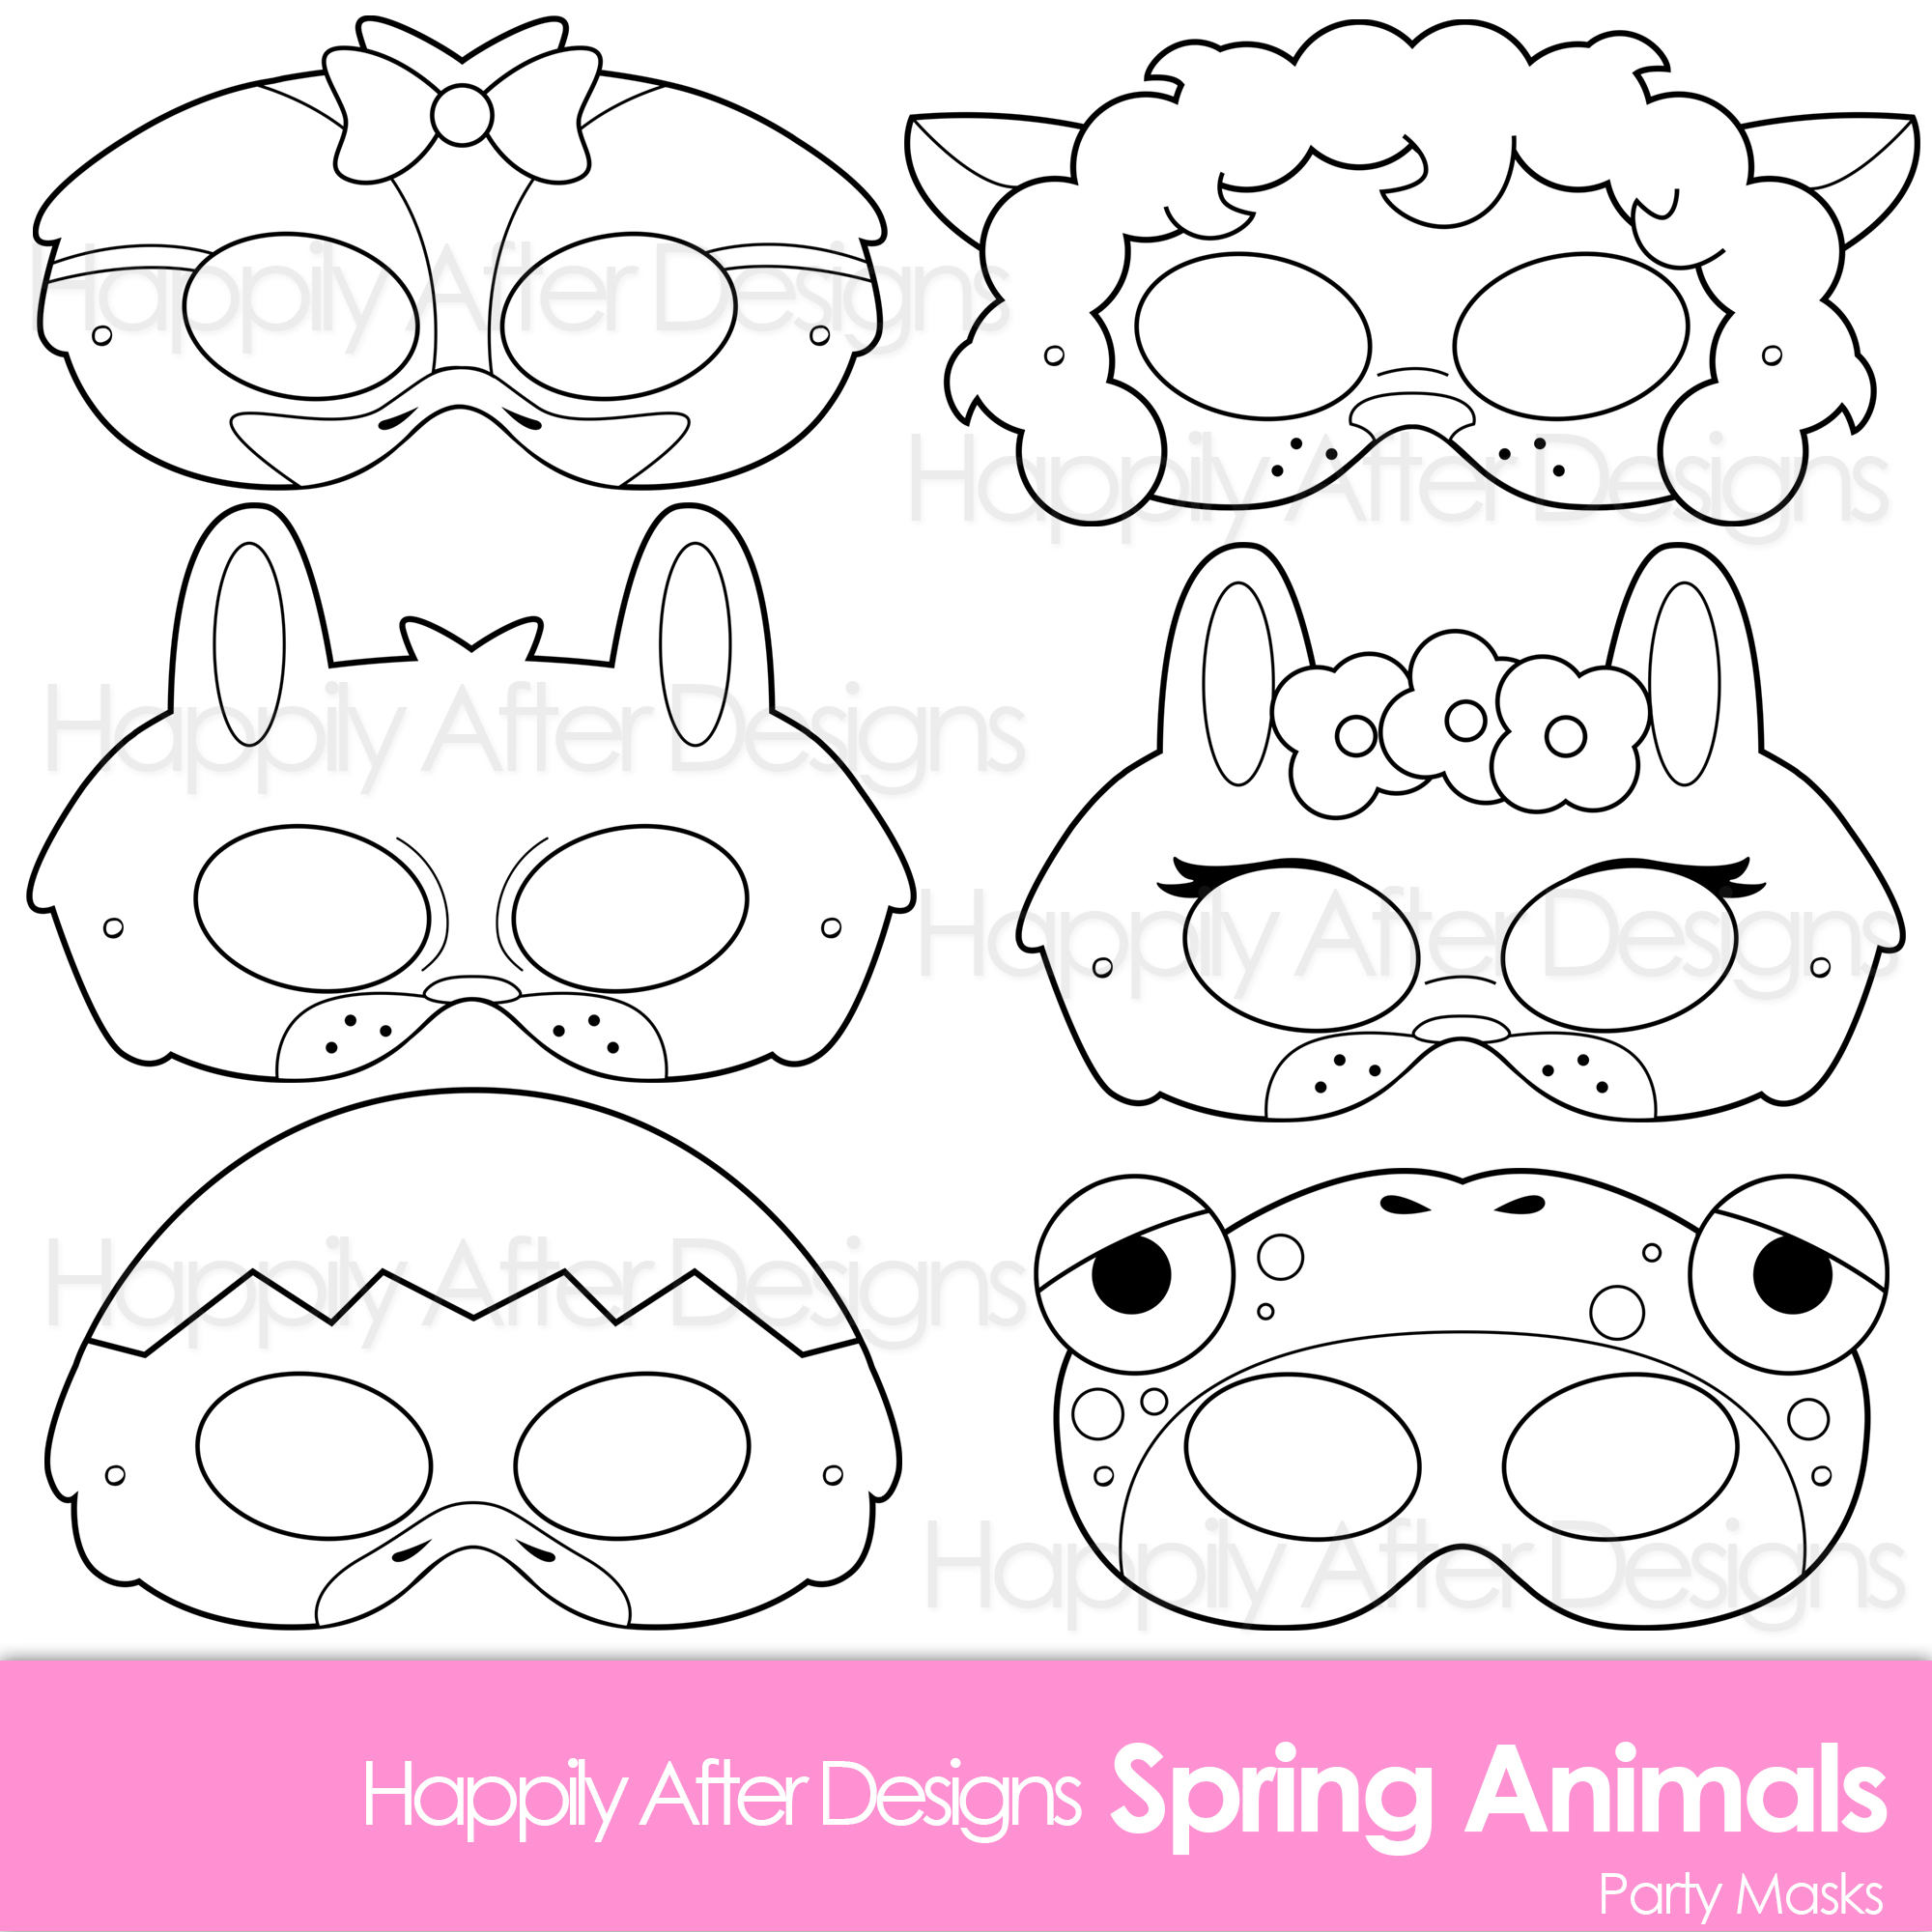 Spring Animals Printable Coloring Masks Bunny Mask Frog Etsy